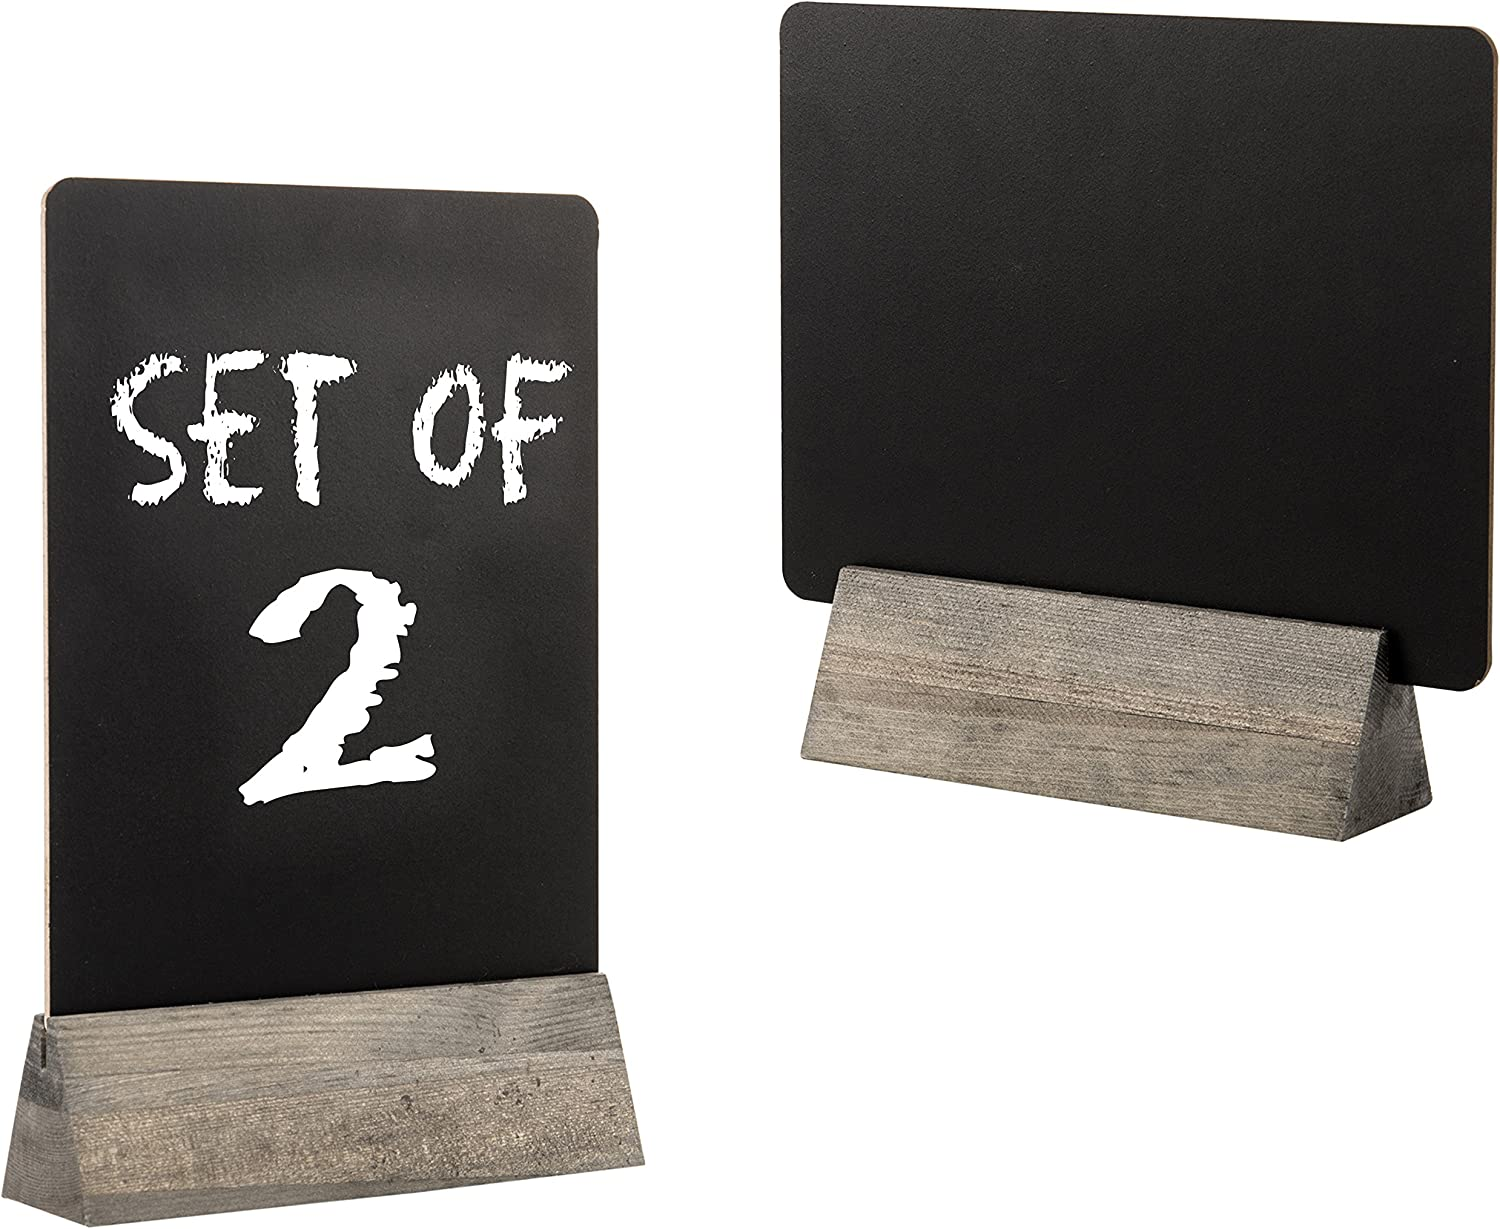 Set of 2 Tabletop Double Sided Chalkboard Display Sign/Placeholder with Wooden Base Stand, Gray: Office Products